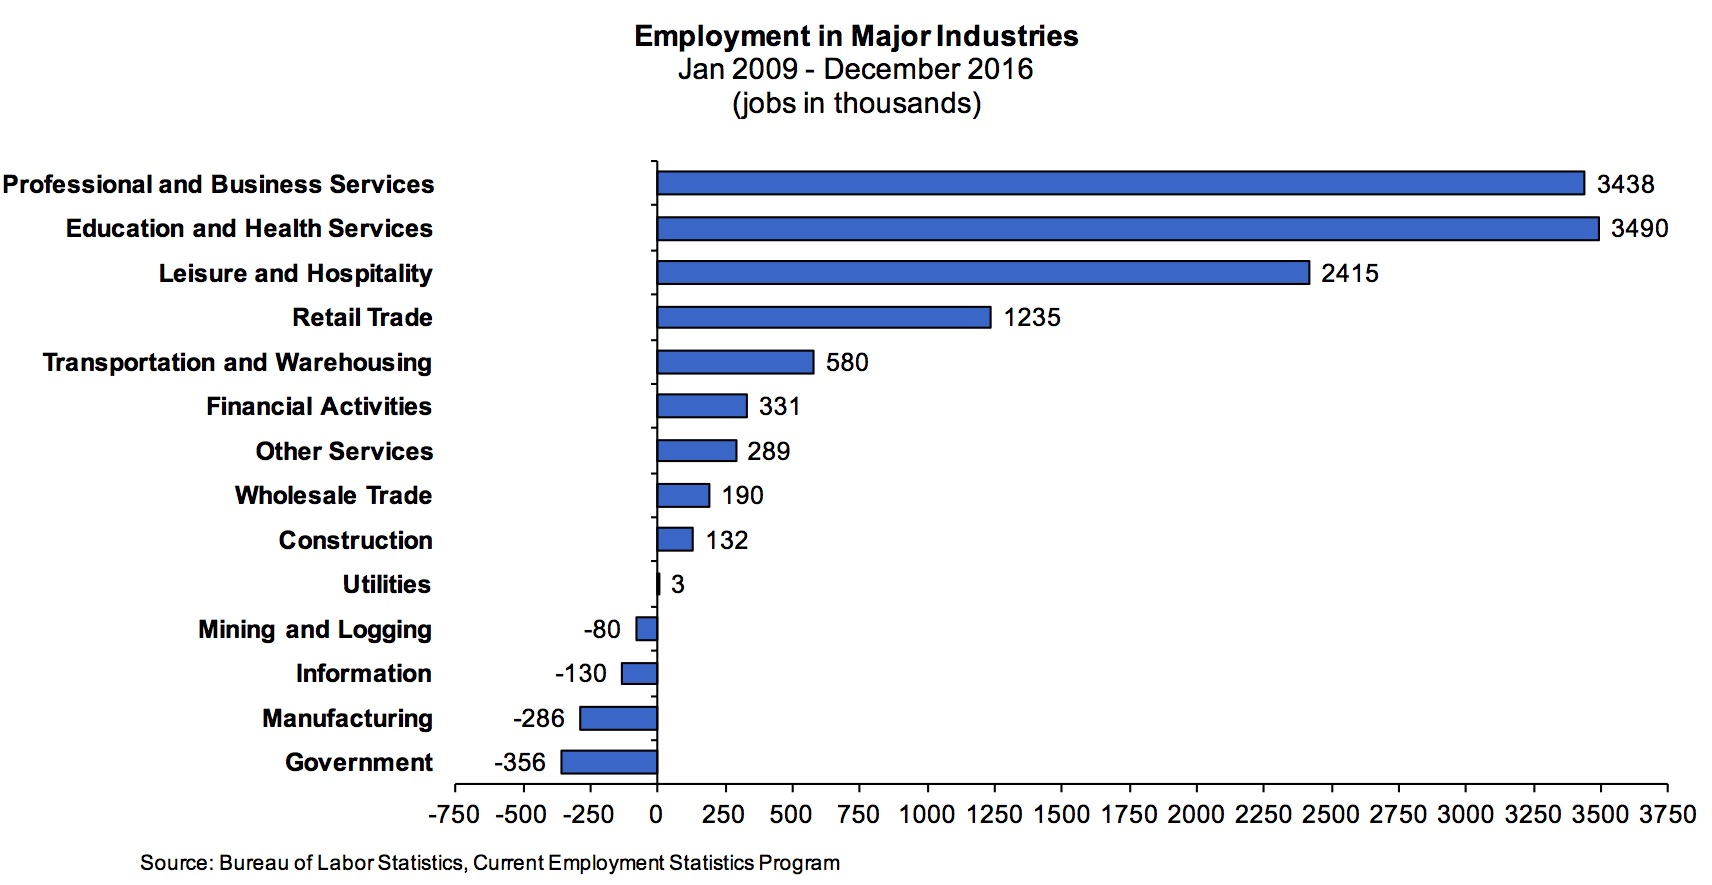 Employment in Major Industries